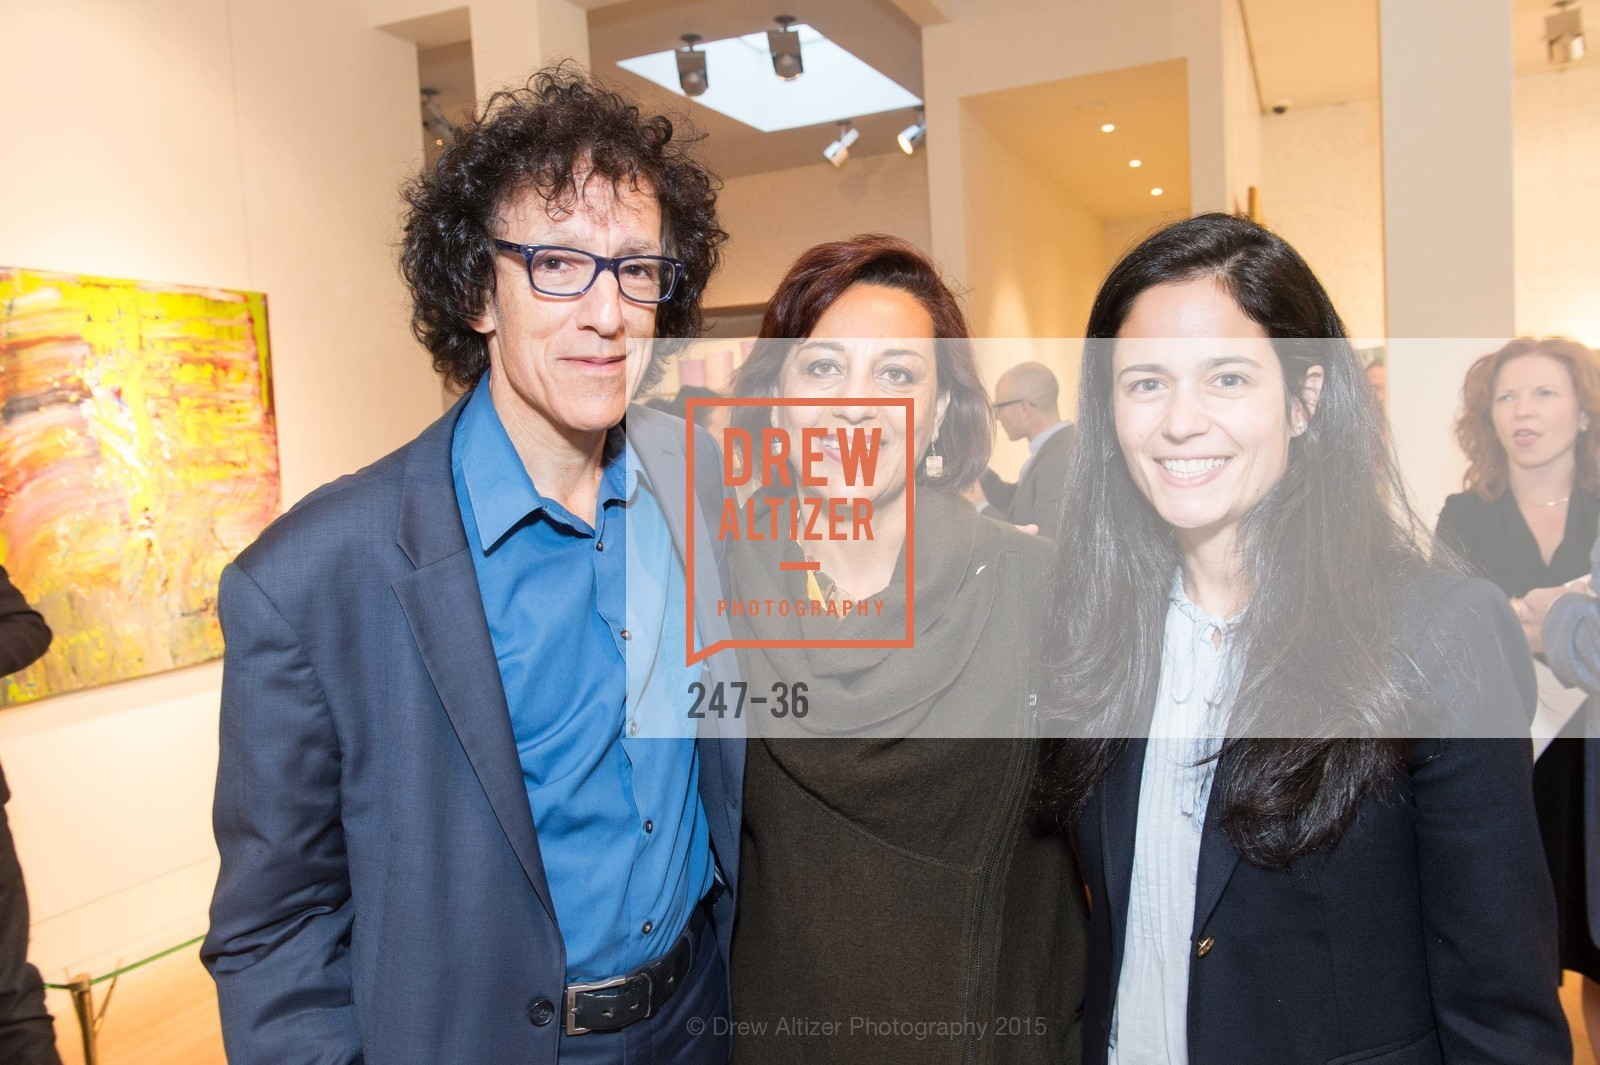 Jonathan Curiel, Nazila Tobaei, Florie Hutchinson, Post War and Contemporary preview at Hedge Gallery , Hedge Gallery. 501 Pacific Ave, San Francisco, CA 94133, April 16th, 2015,Drew Altizer, Drew Altizer Photography, full-service agency, private events, San Francisco photographer, photographer california